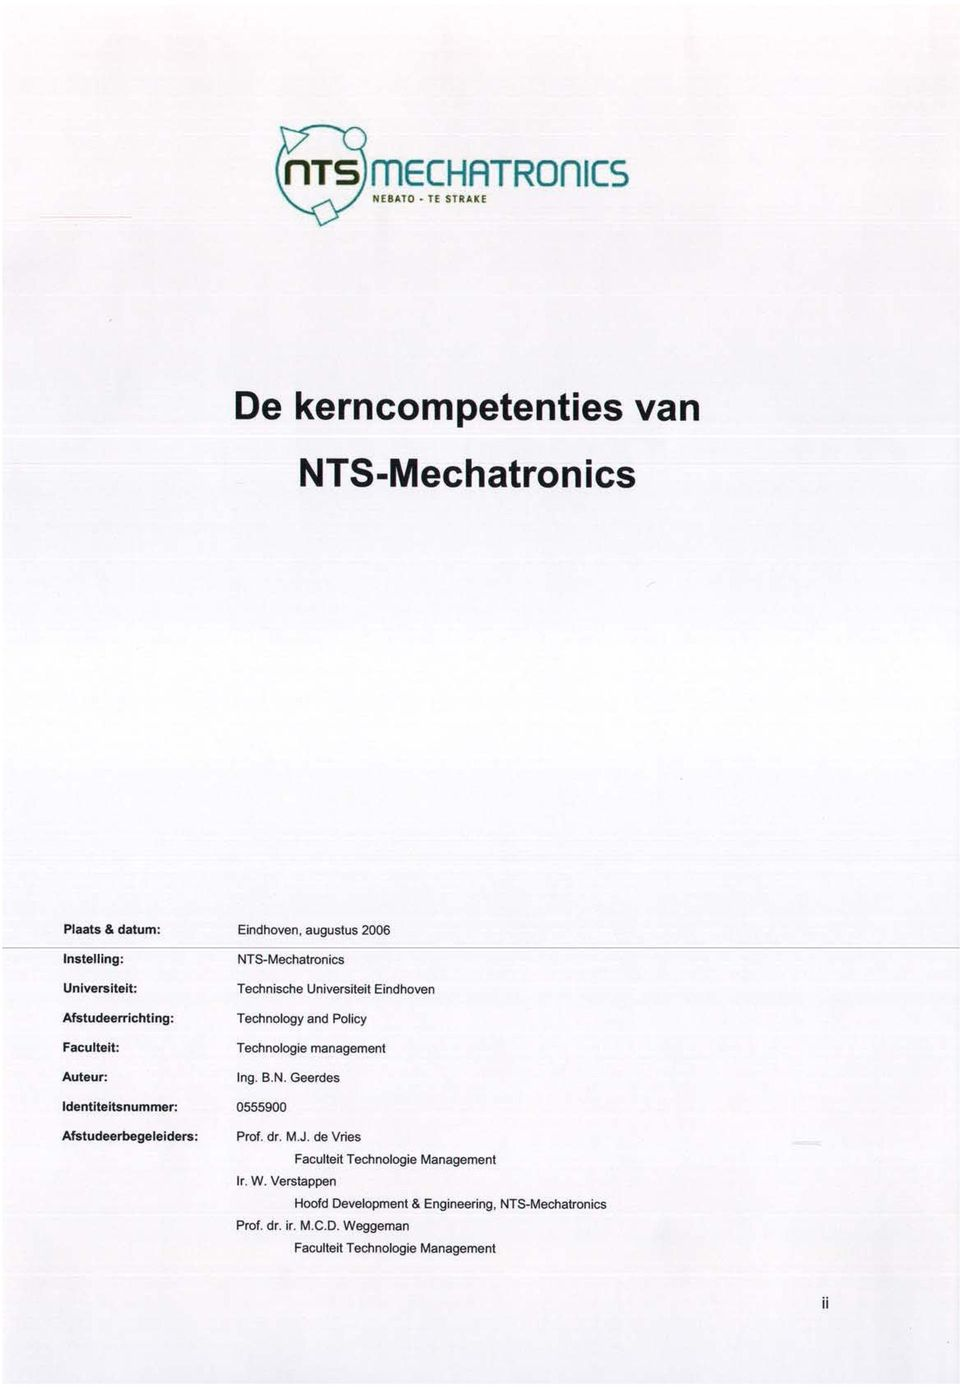 Policy Technologie manegemeot Ing. B.N. Geerdes 0555900 Prof. dr. M.J. de Vries Faculleit Technologie Management Ir.